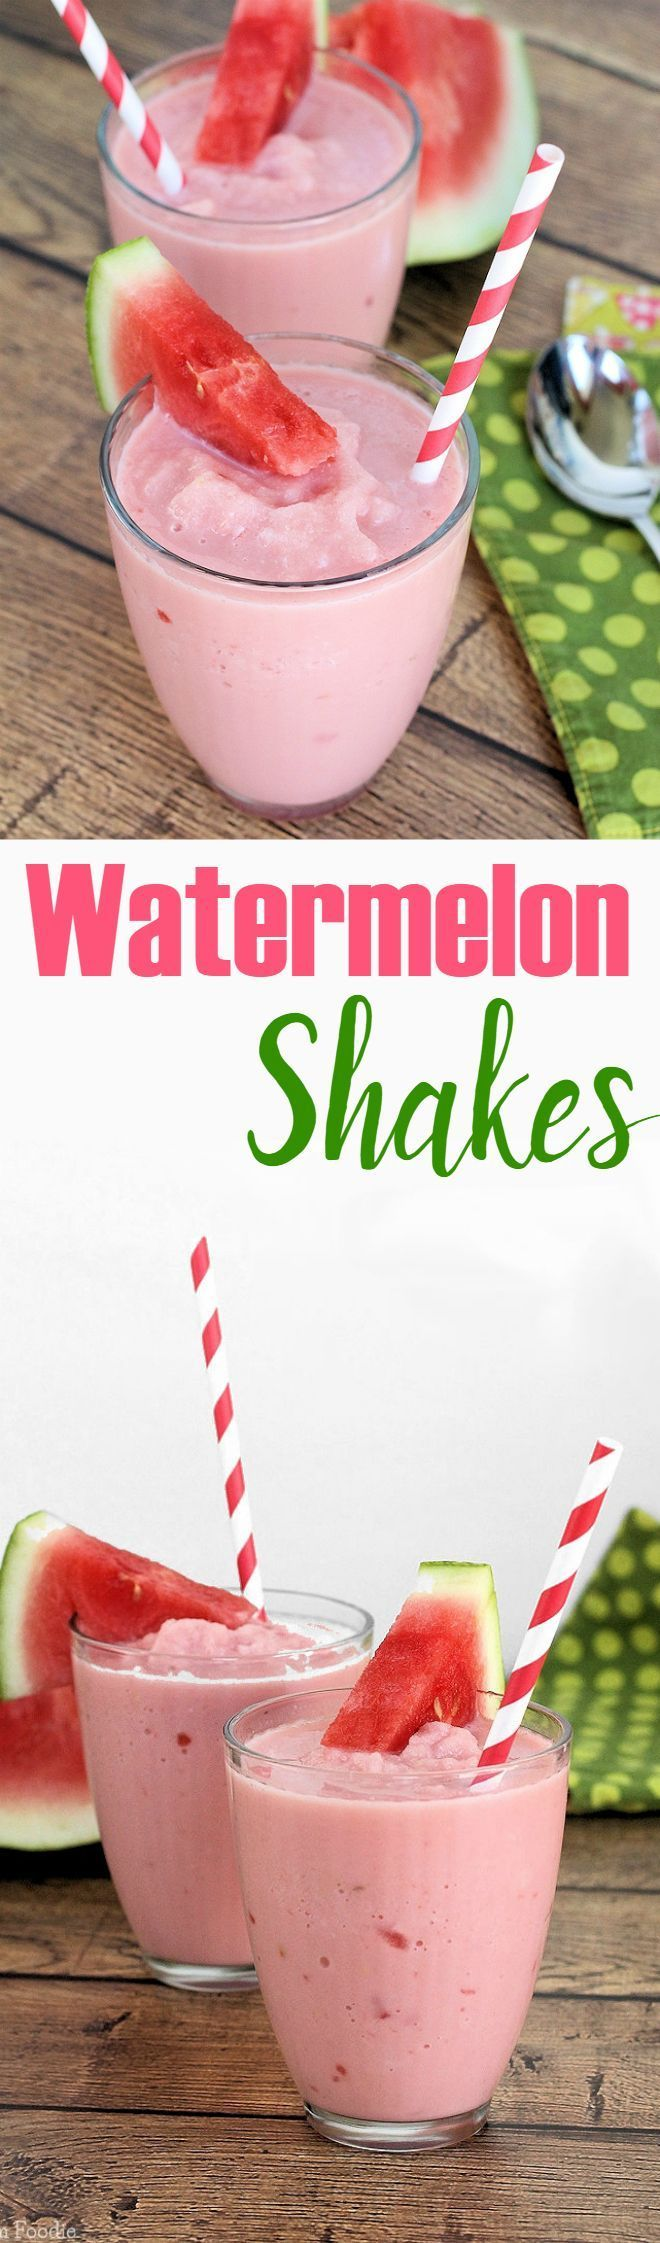 Summer is fast-approaching and these watermelon shakes are the perfect way to celebrate its arrival.